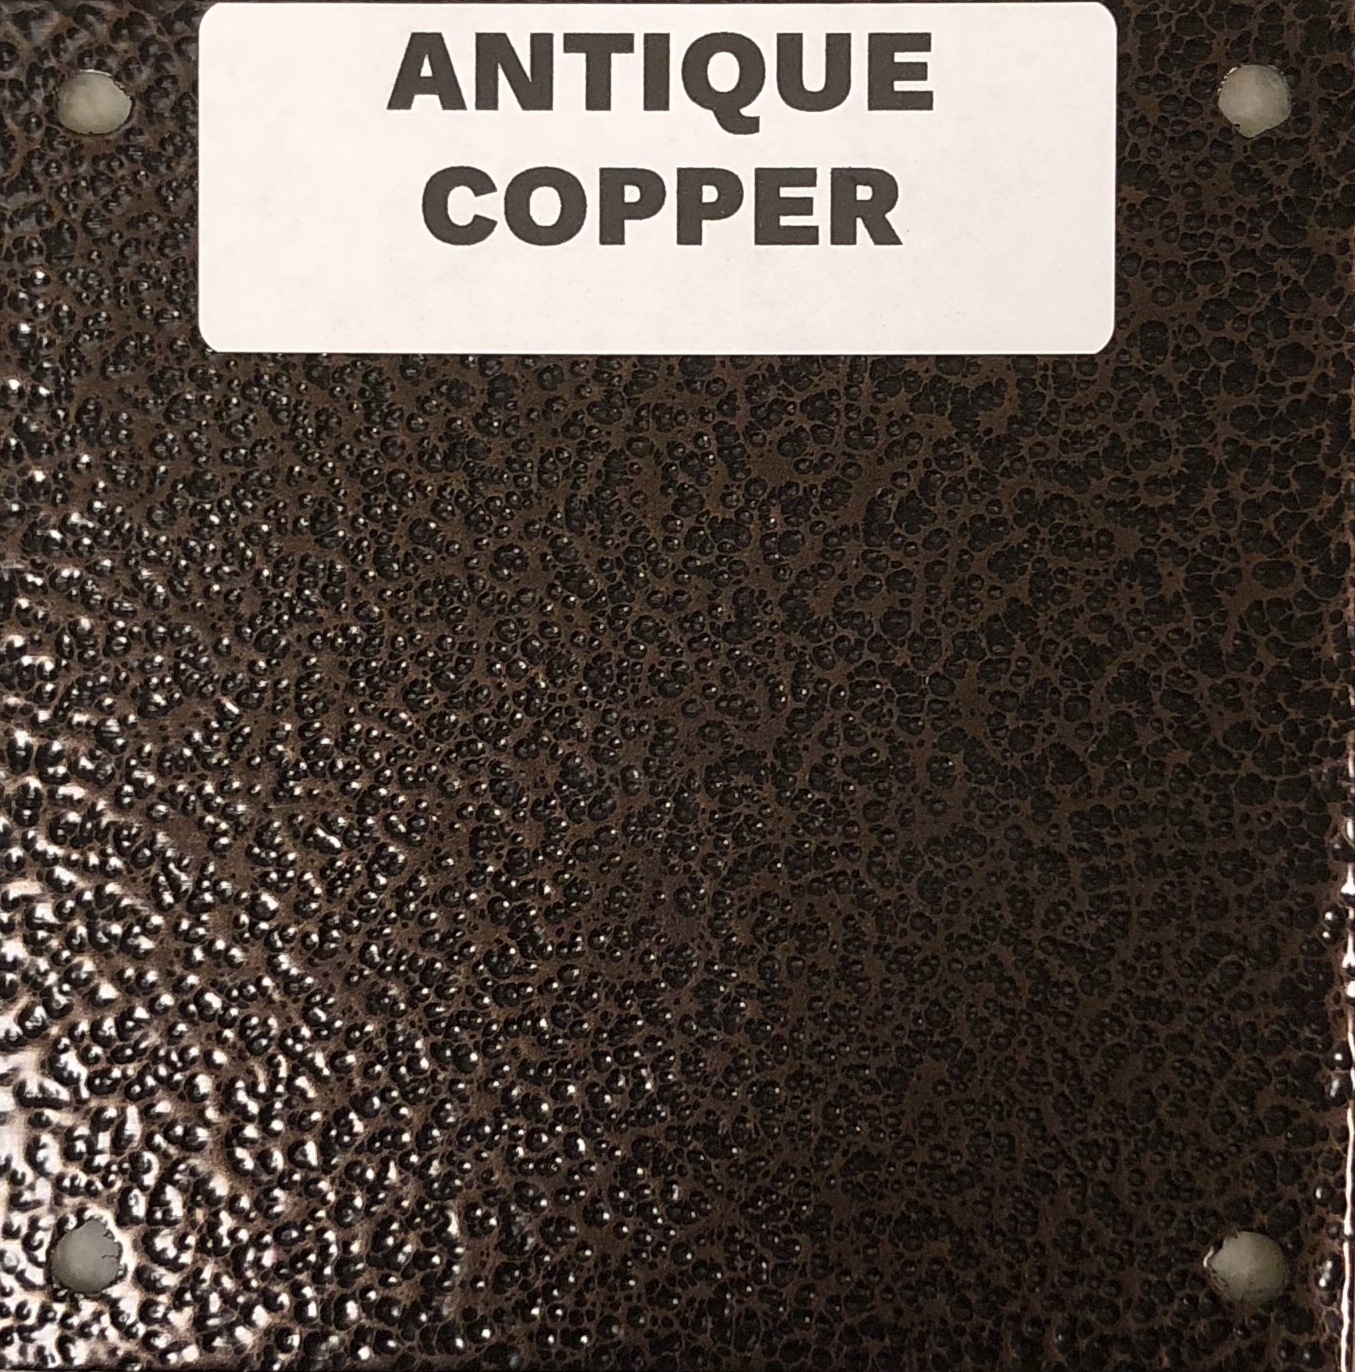 Ant copper